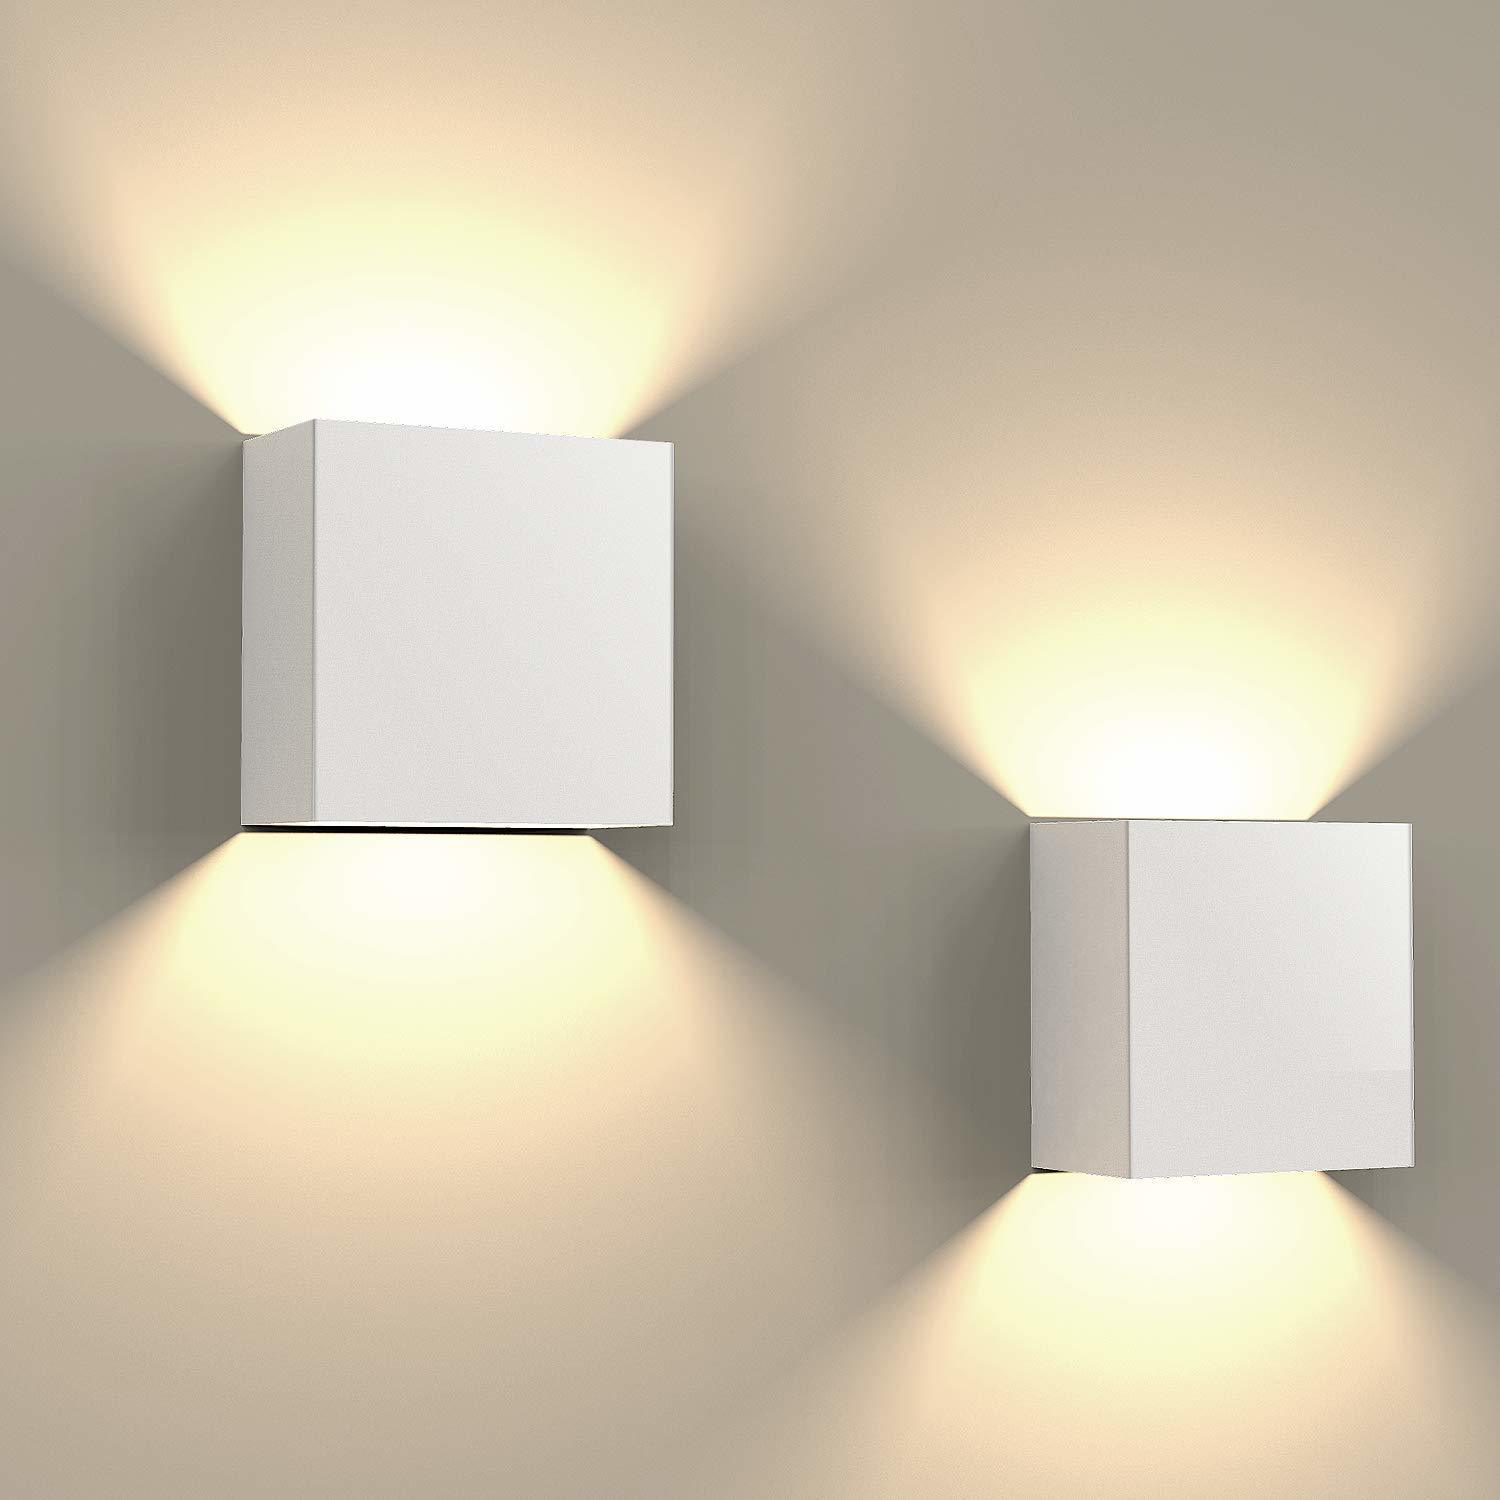 6W Led Combination Up & Down Wall Lamp Indoor (Warm White) (White)